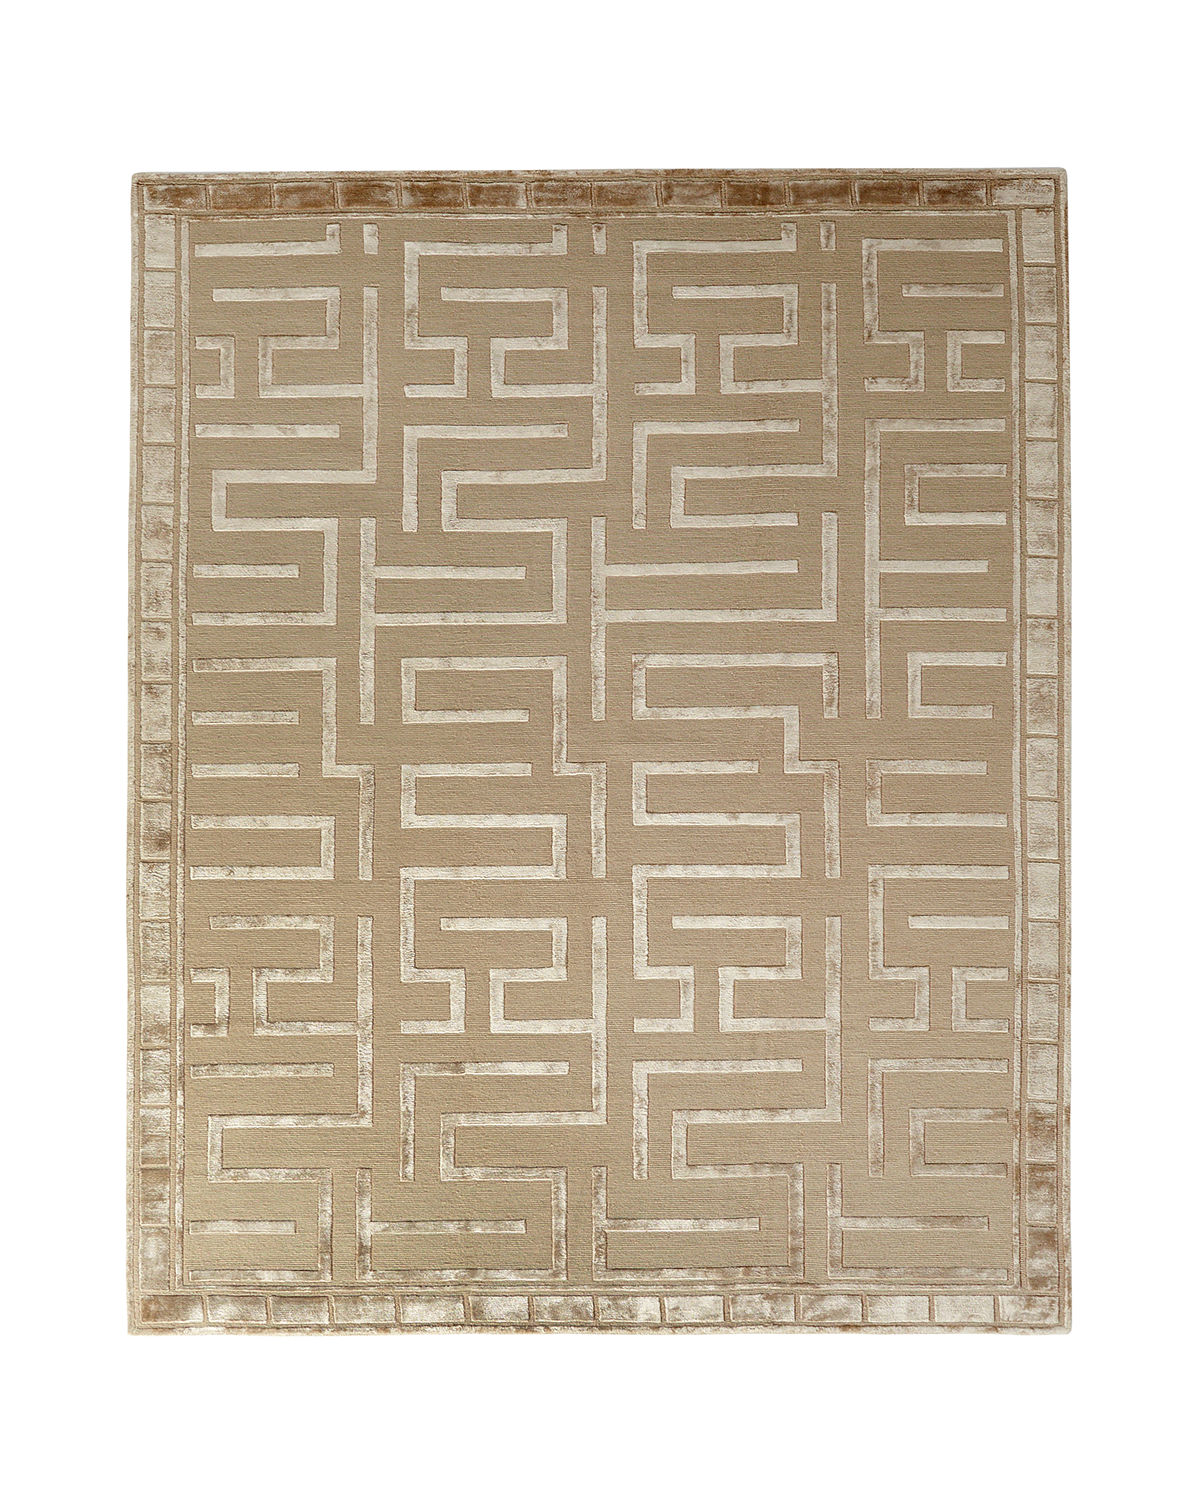 Exquisite Rugs Rowling Maze Hand-Knotted Rug, 10' x 14'